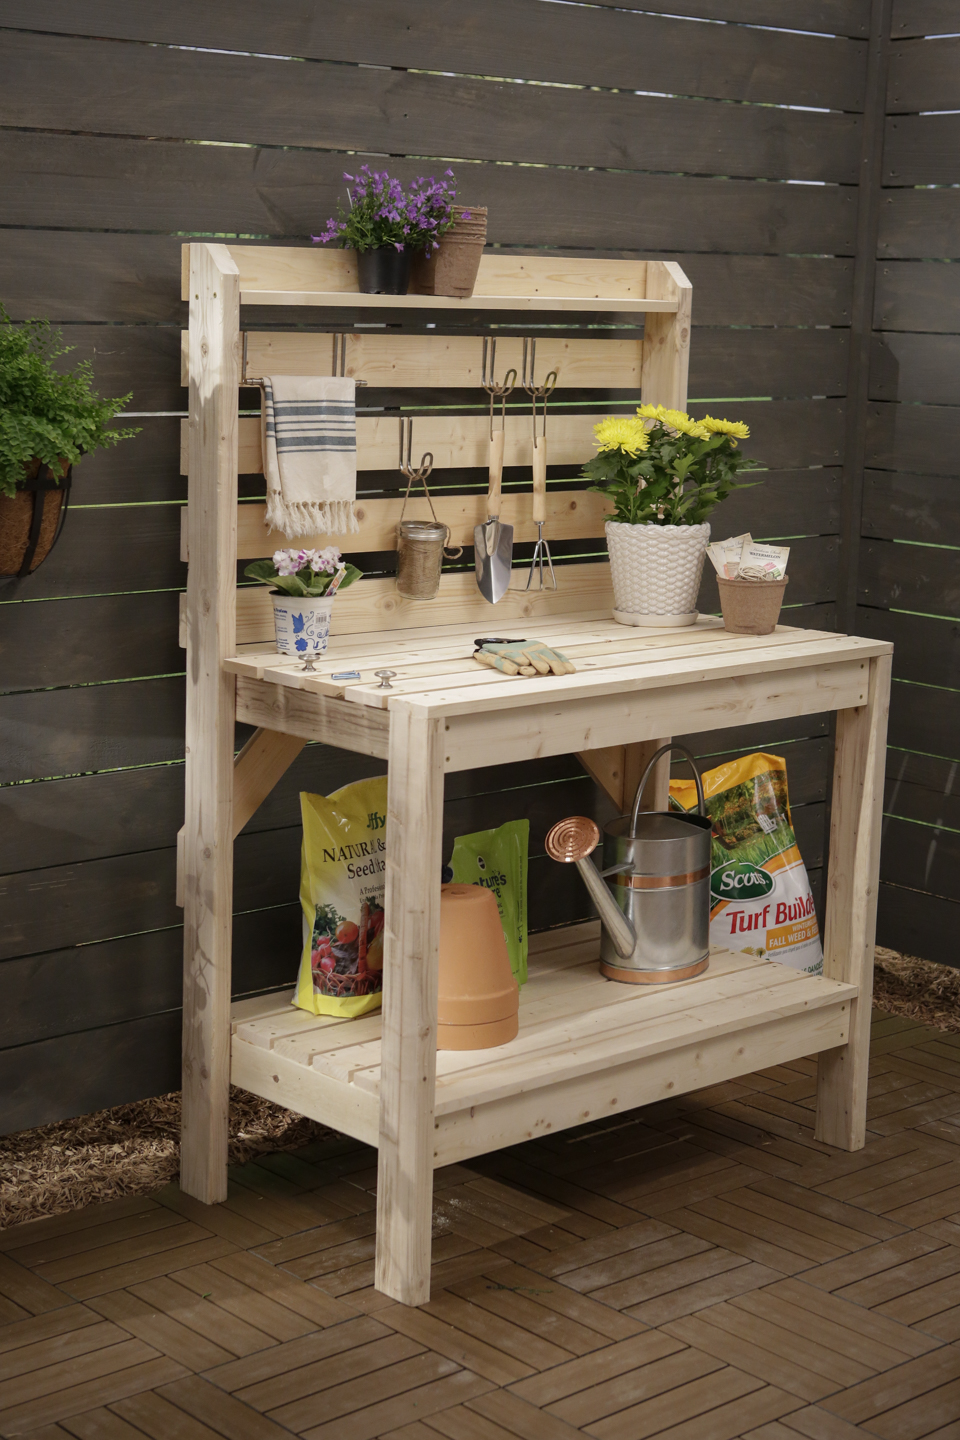 16 Potting Bench Plans To Make Gardening Work Easy | The Self ...